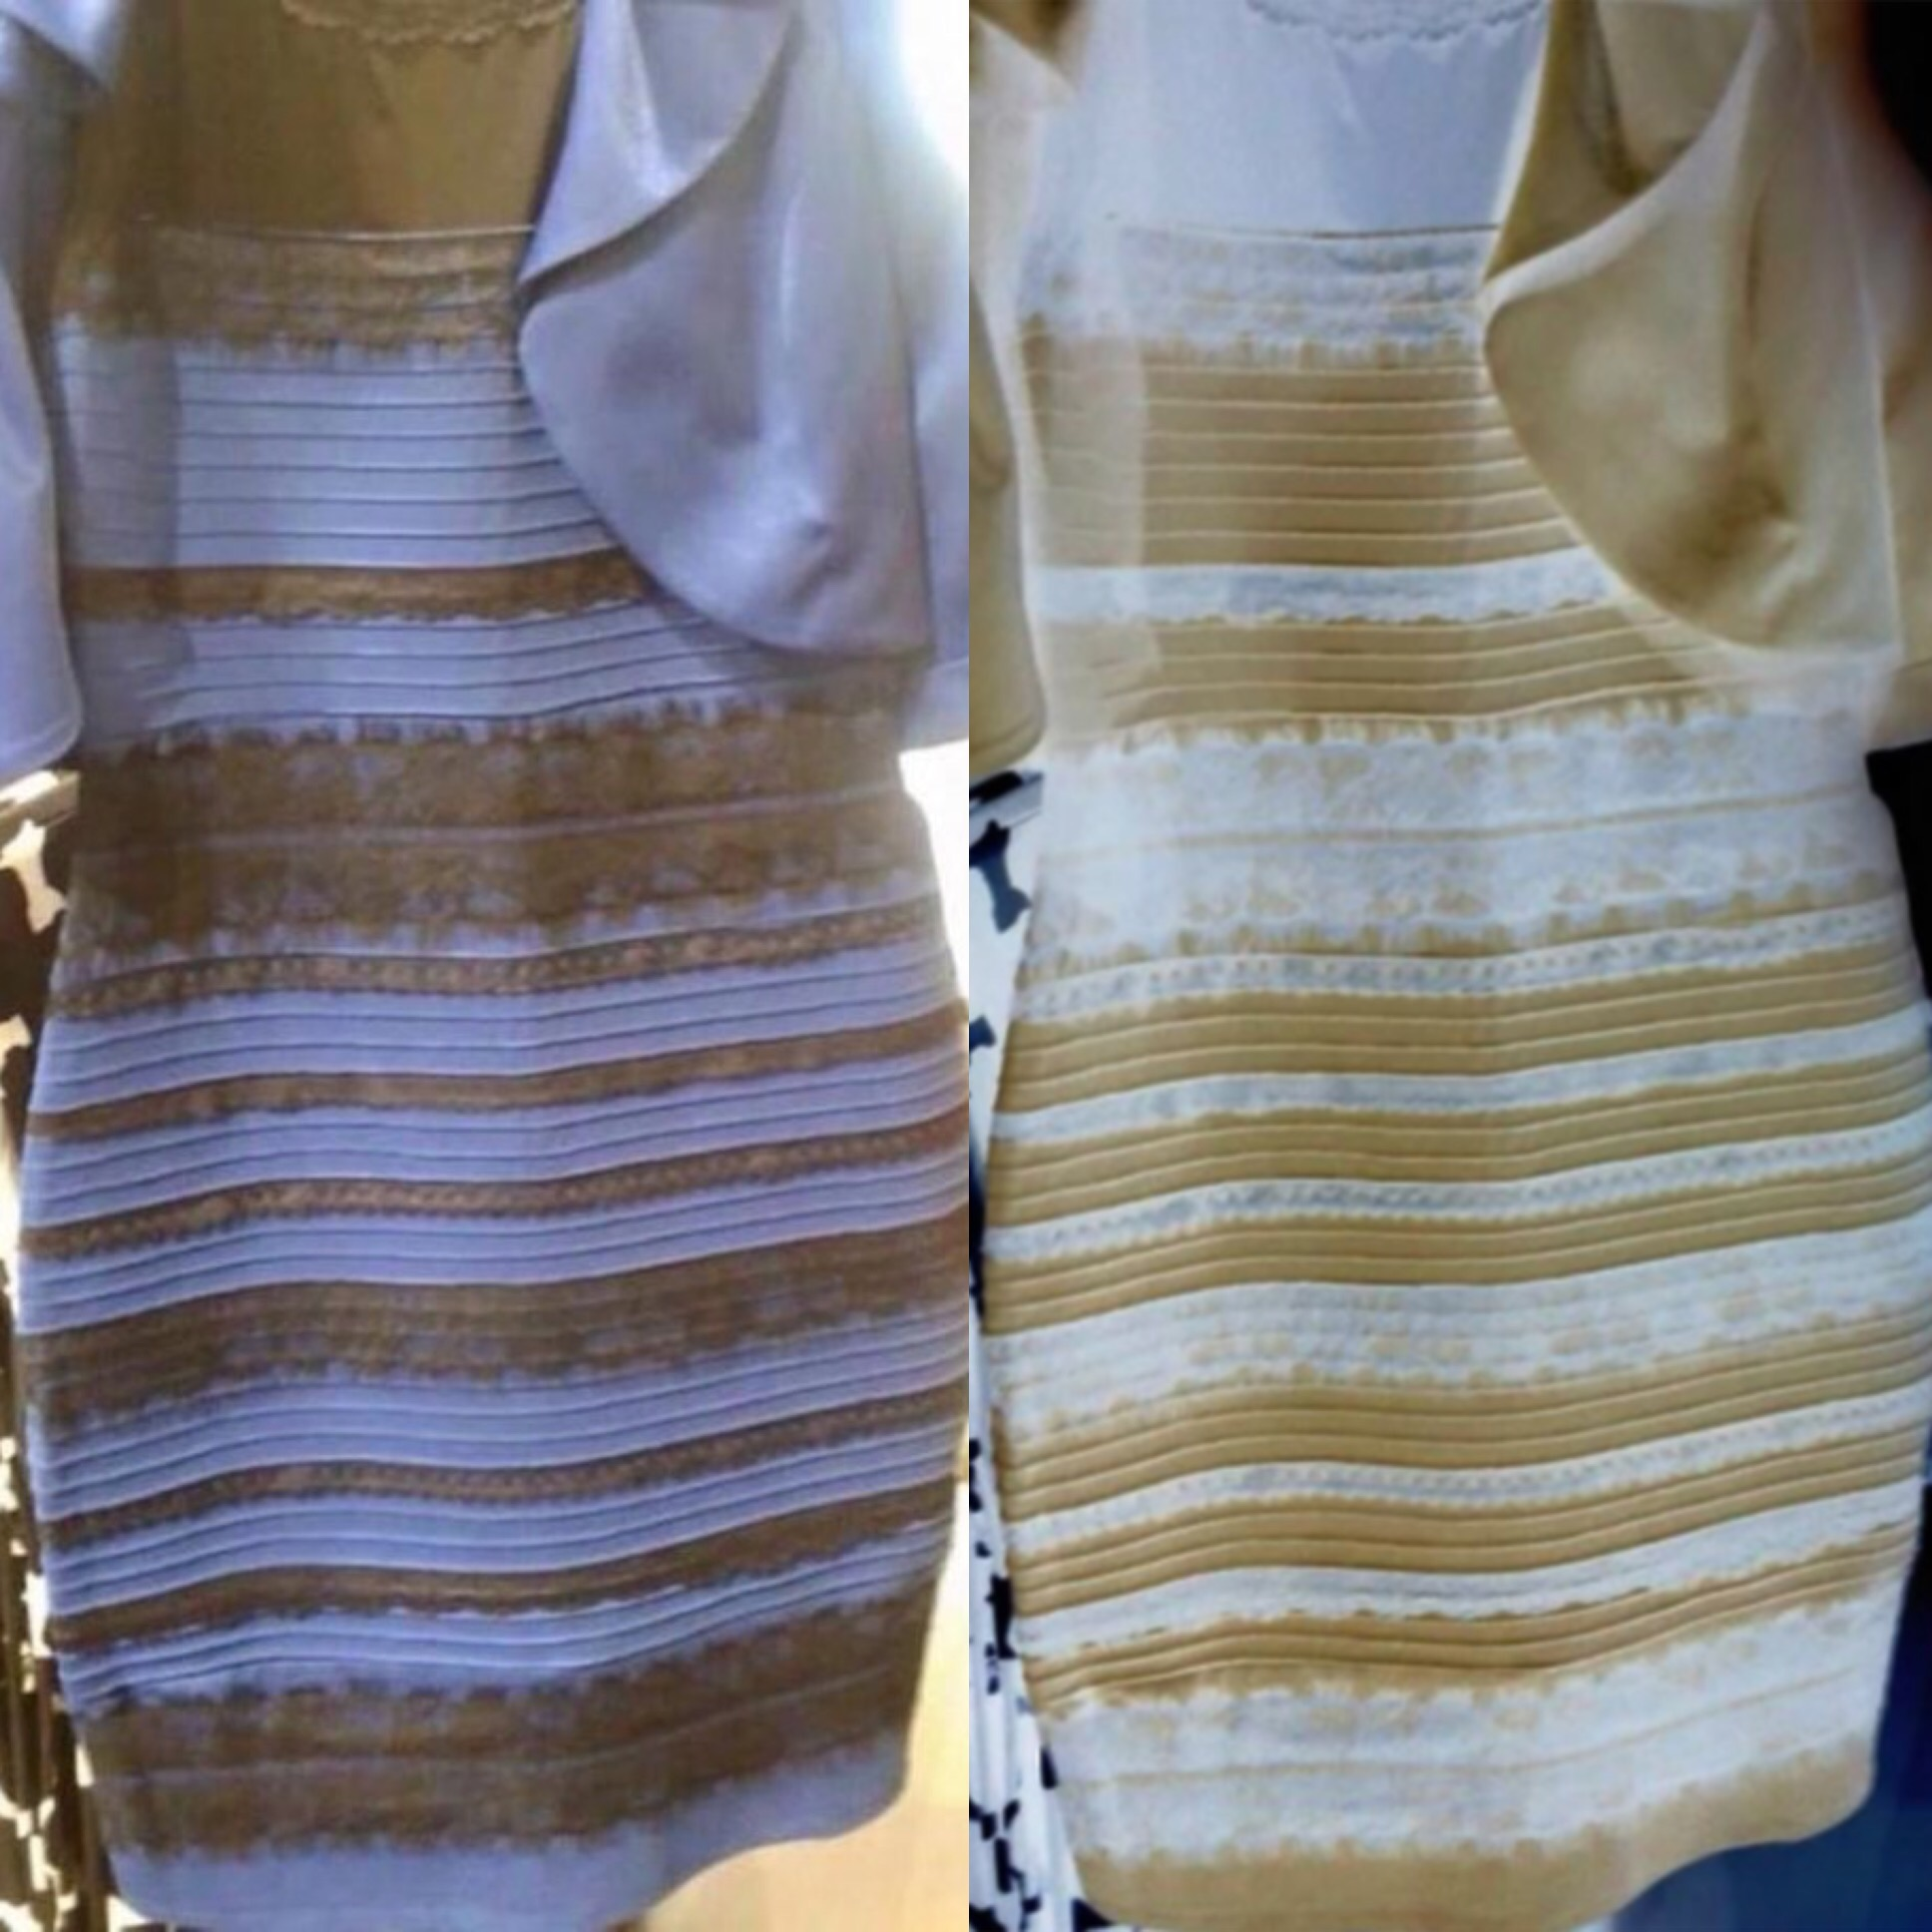 The Black and Blue, White and Gold Dress Finally Explained ...